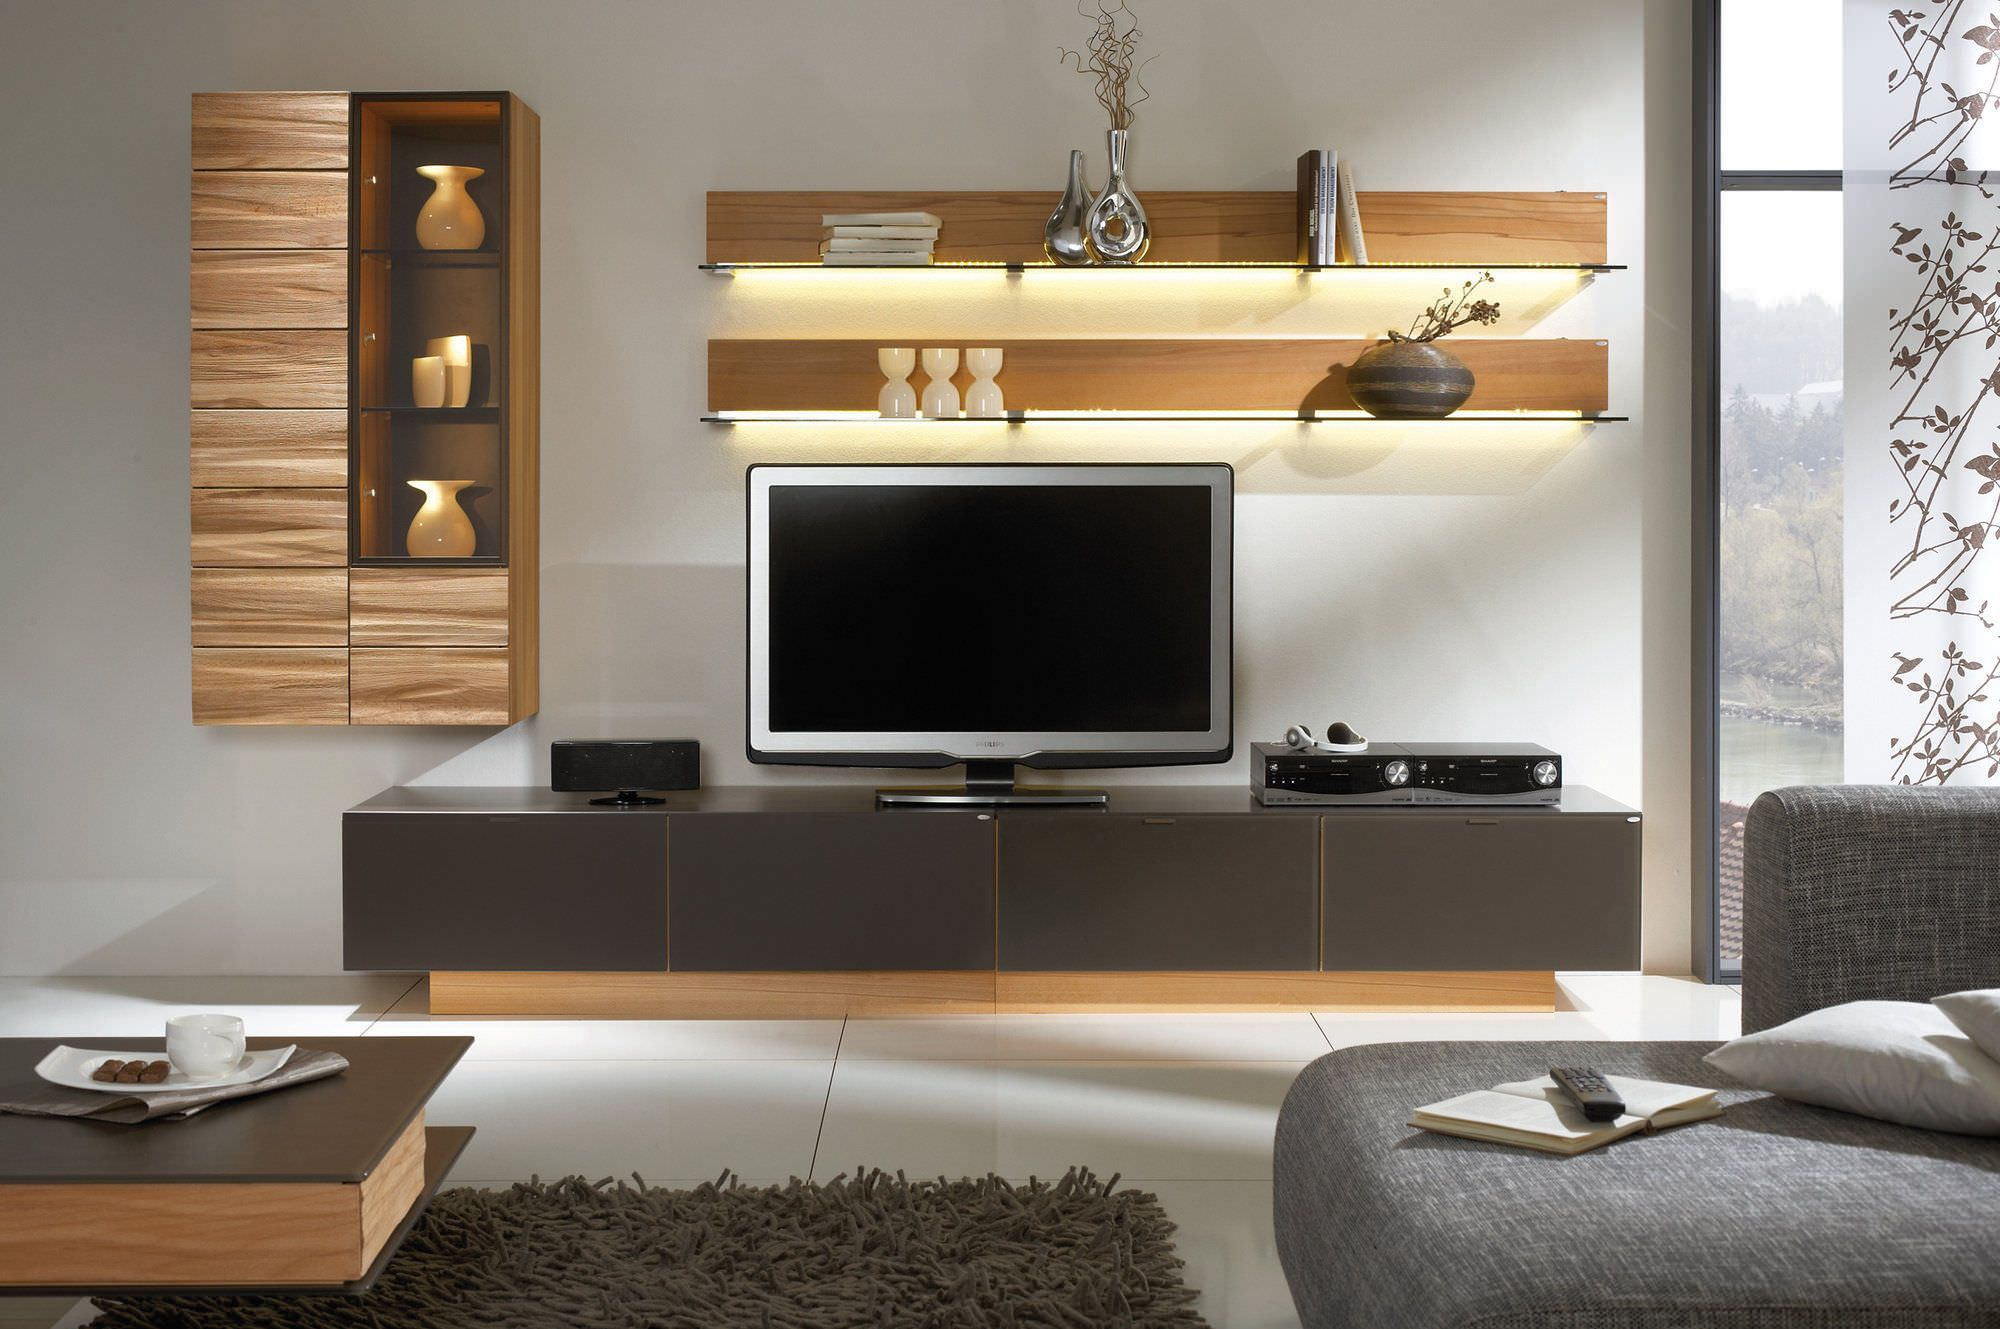 Tv Unit Design For Small Living Room Tv Unit Designs India Designer Tv Unitscorner Tv Unit Design Wall Unit Designs Wall Tv Unit Design Living Room Tv